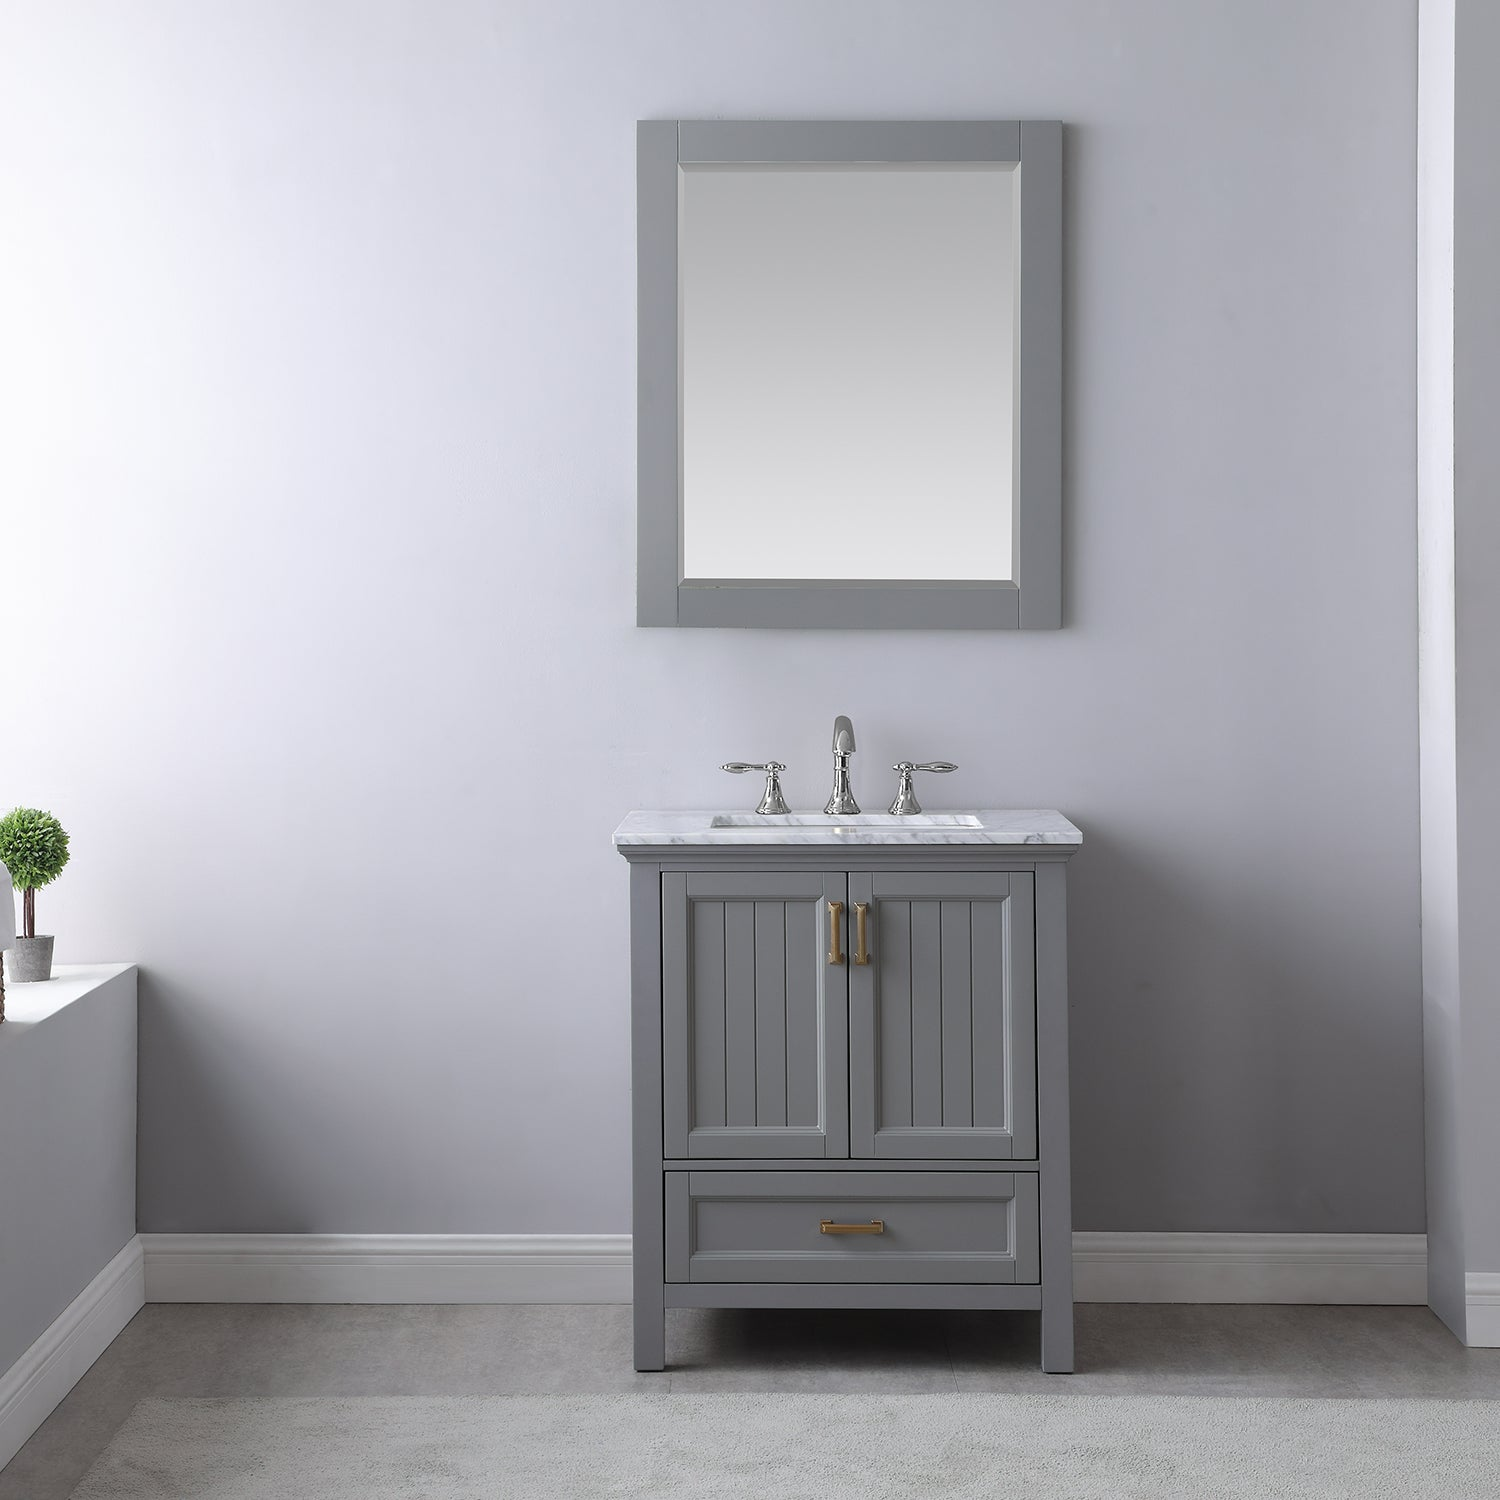 "Isla 30"" Single Bathroom Vanity Set in Gray and Carrara White Marble Countertop with Mirror"